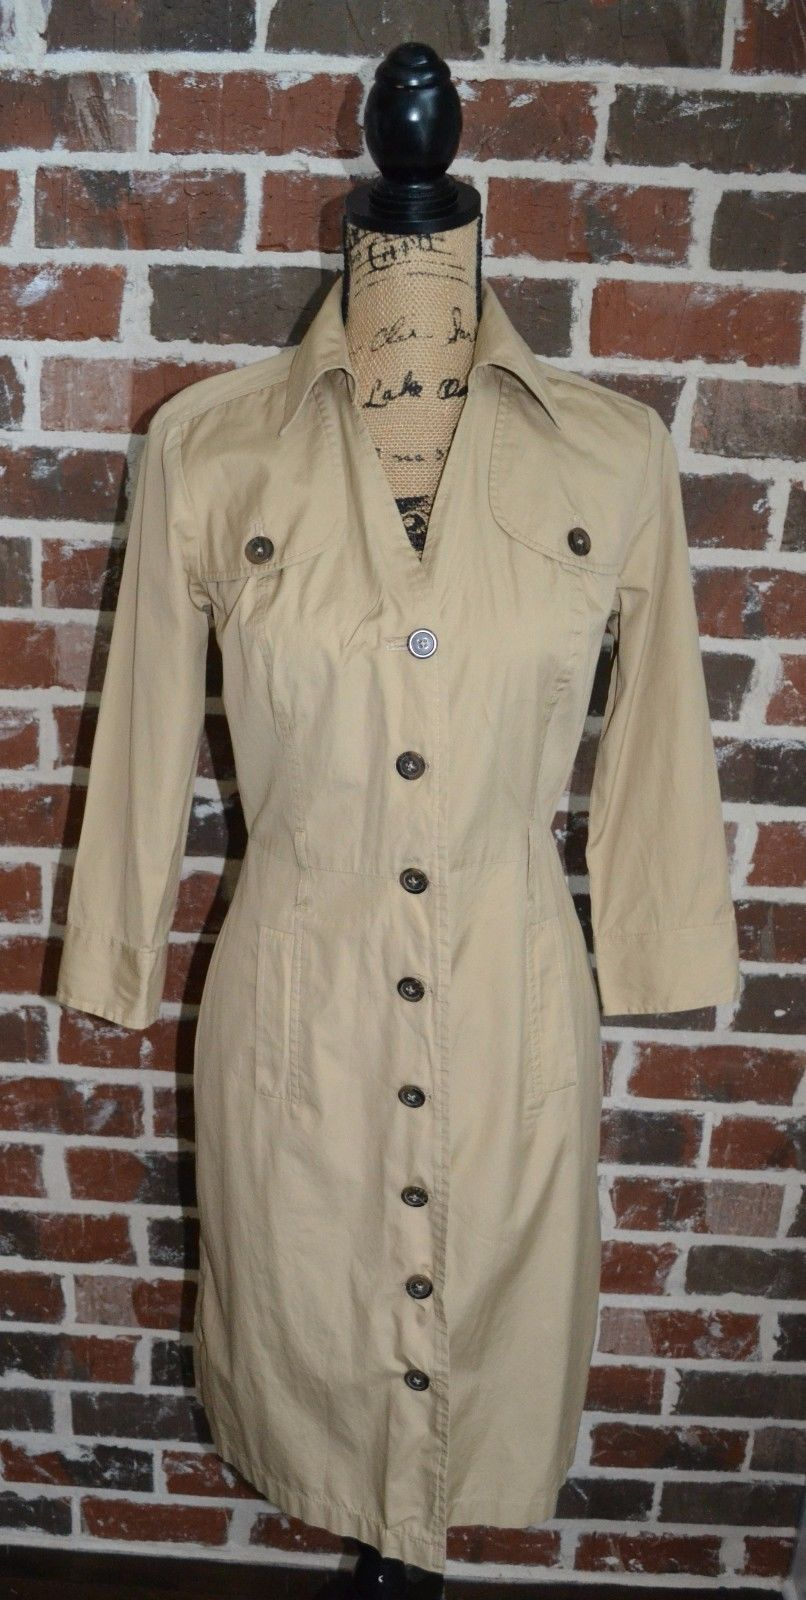 Ann Taylor LOFT Tan Brown Button Down 3/4 Sleeve Shirt Dress Sz 4 100% Cotton | eBay